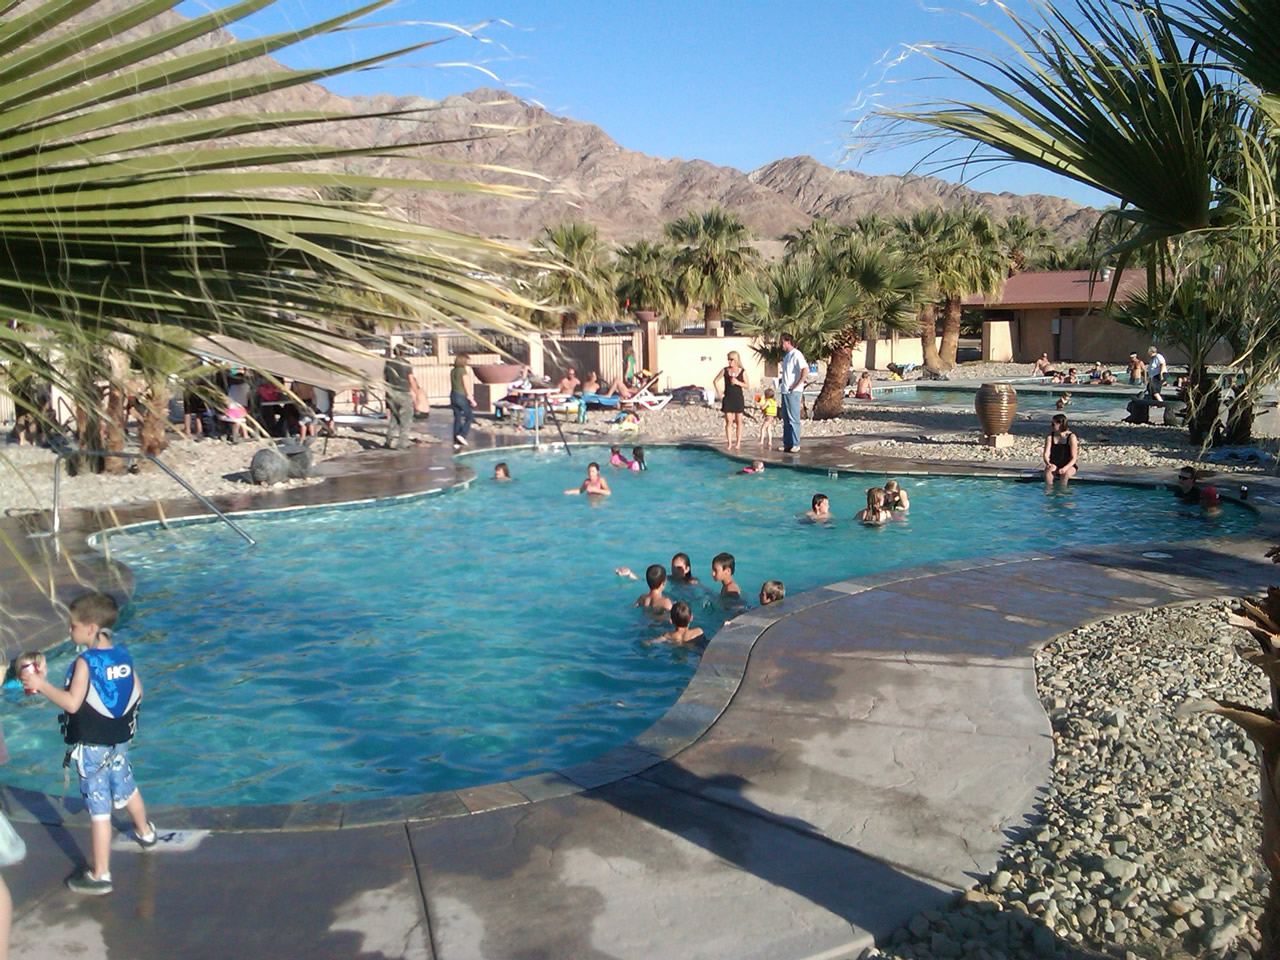 A picture of the main swimming pool at Glamis North Hot Springs Resort